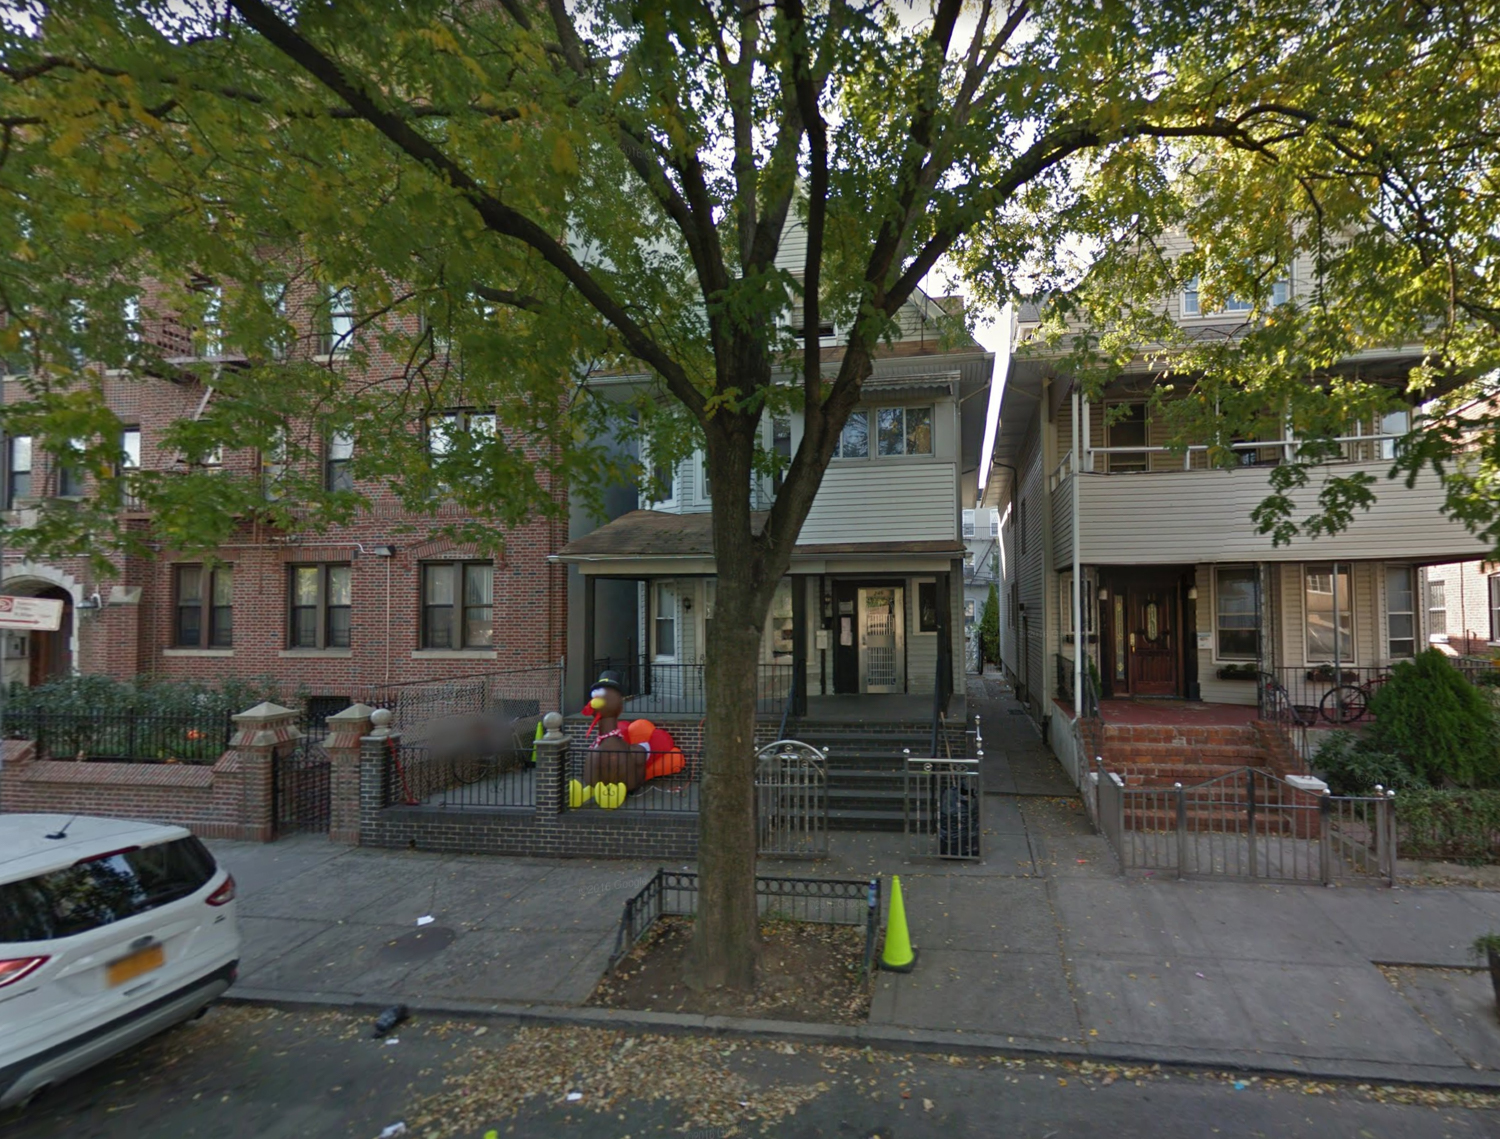 246 Maple Street, via Google Maps